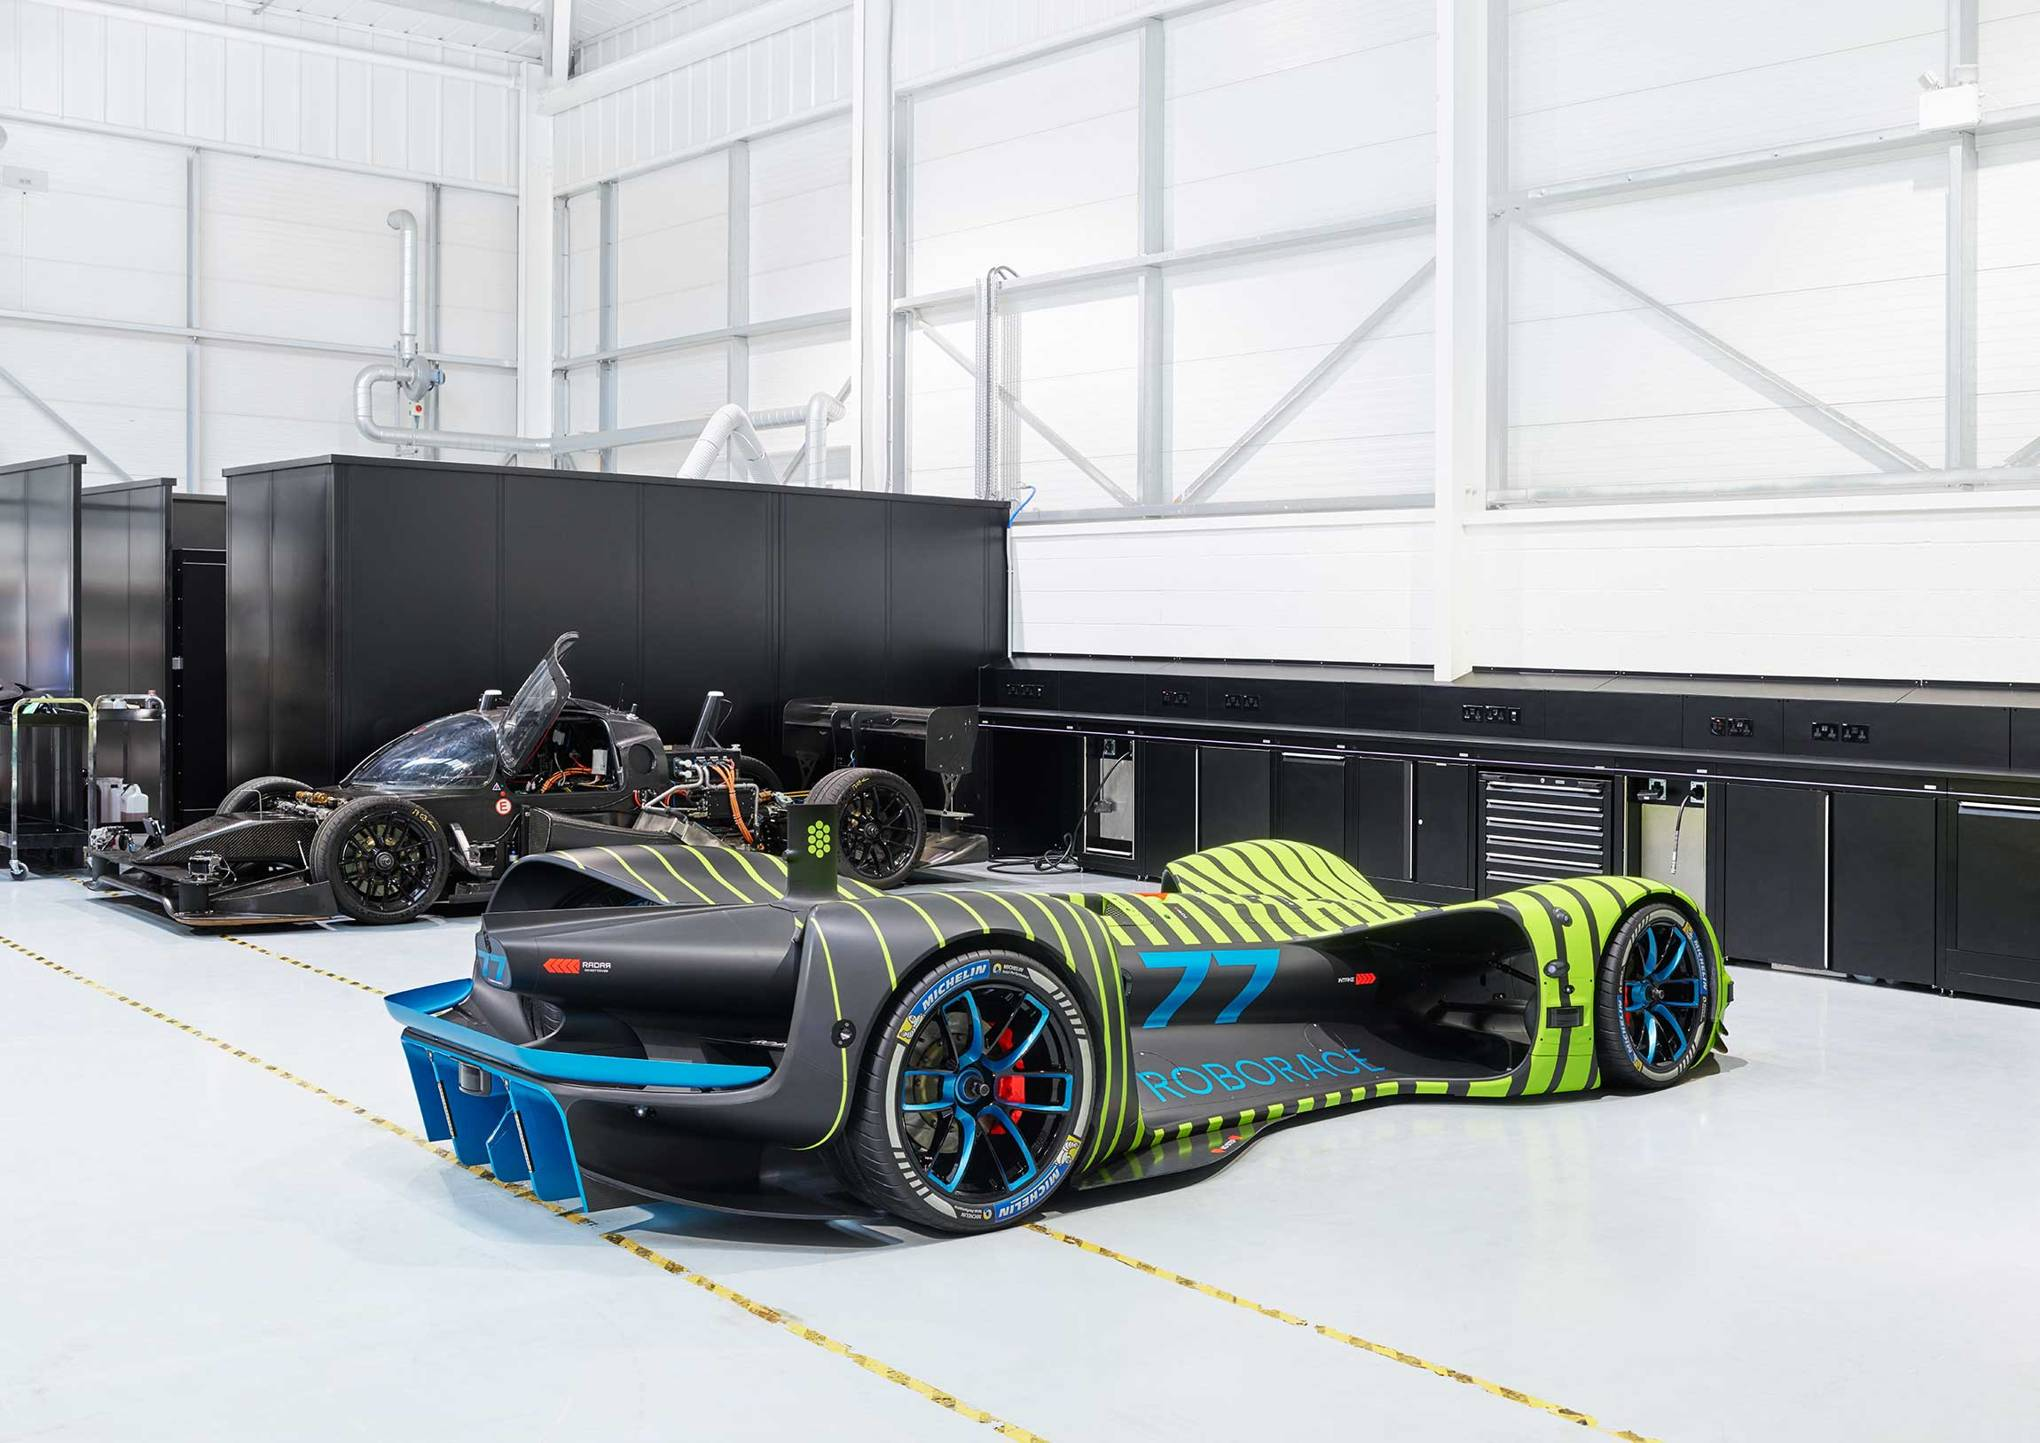 Roborace is building a 300kph AI supercar – no driver required | WIRED UK